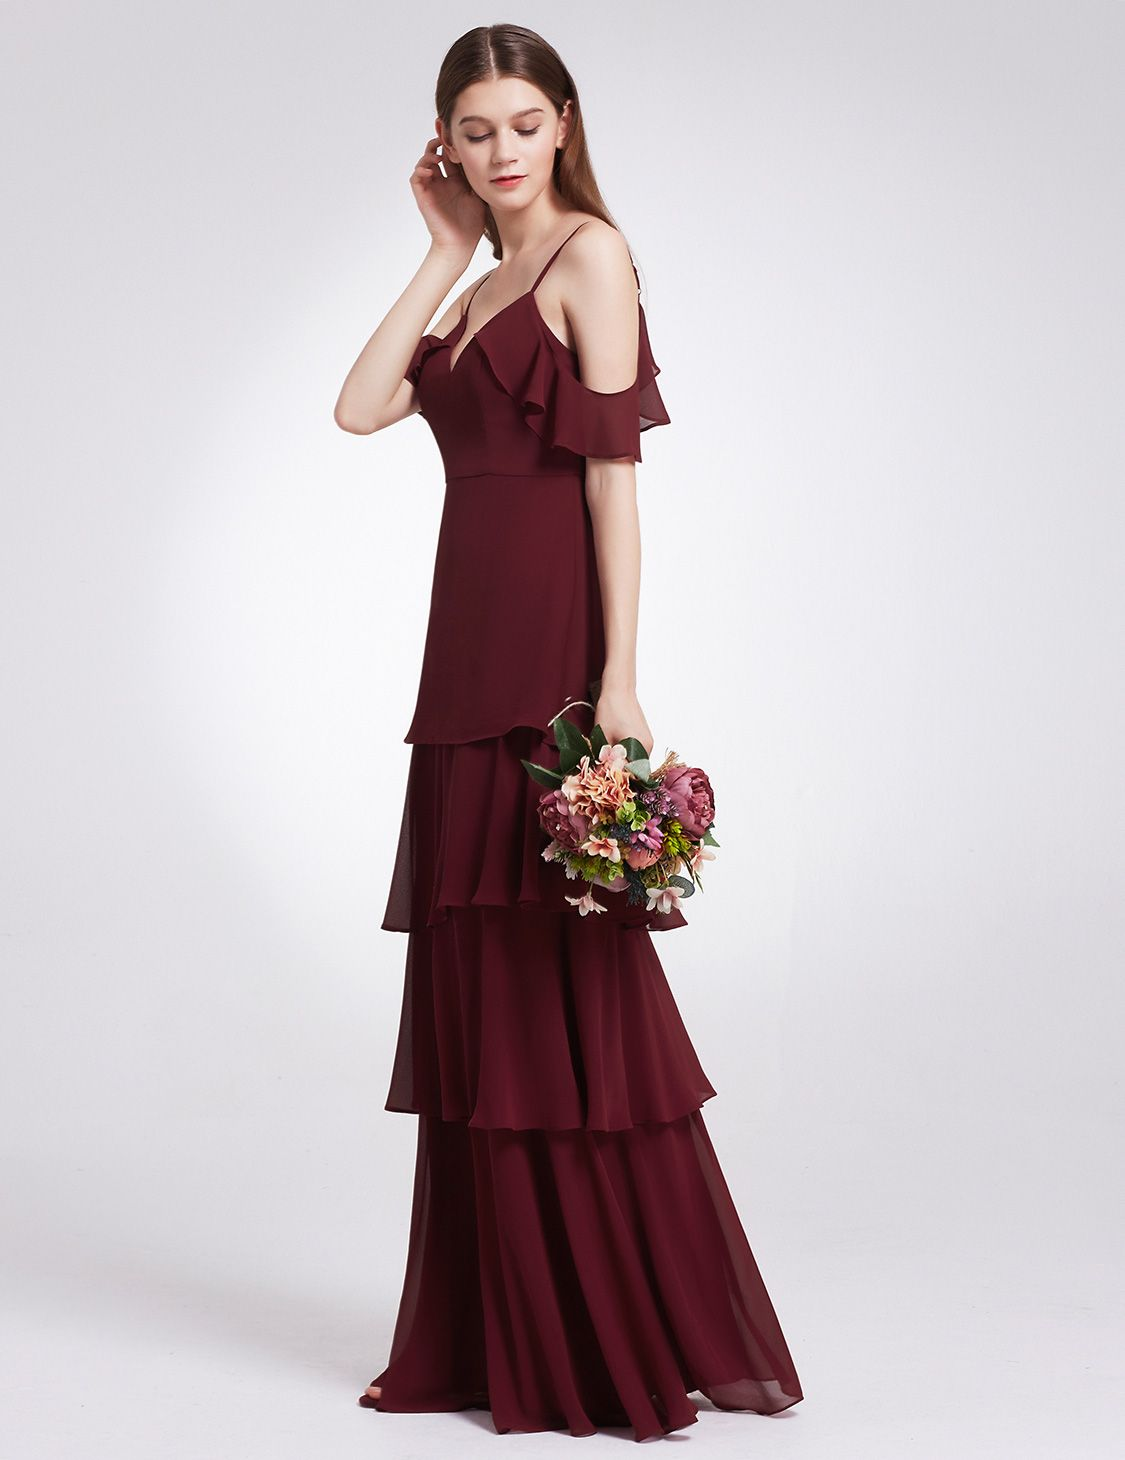 379d3bf234c Ever-Pretty Womens Fashion Long Cold Shoulder Empire Waist Evening Prom  Homecoming Gradual Party Dresses for Women 07202 Burgundy US 10 Empire